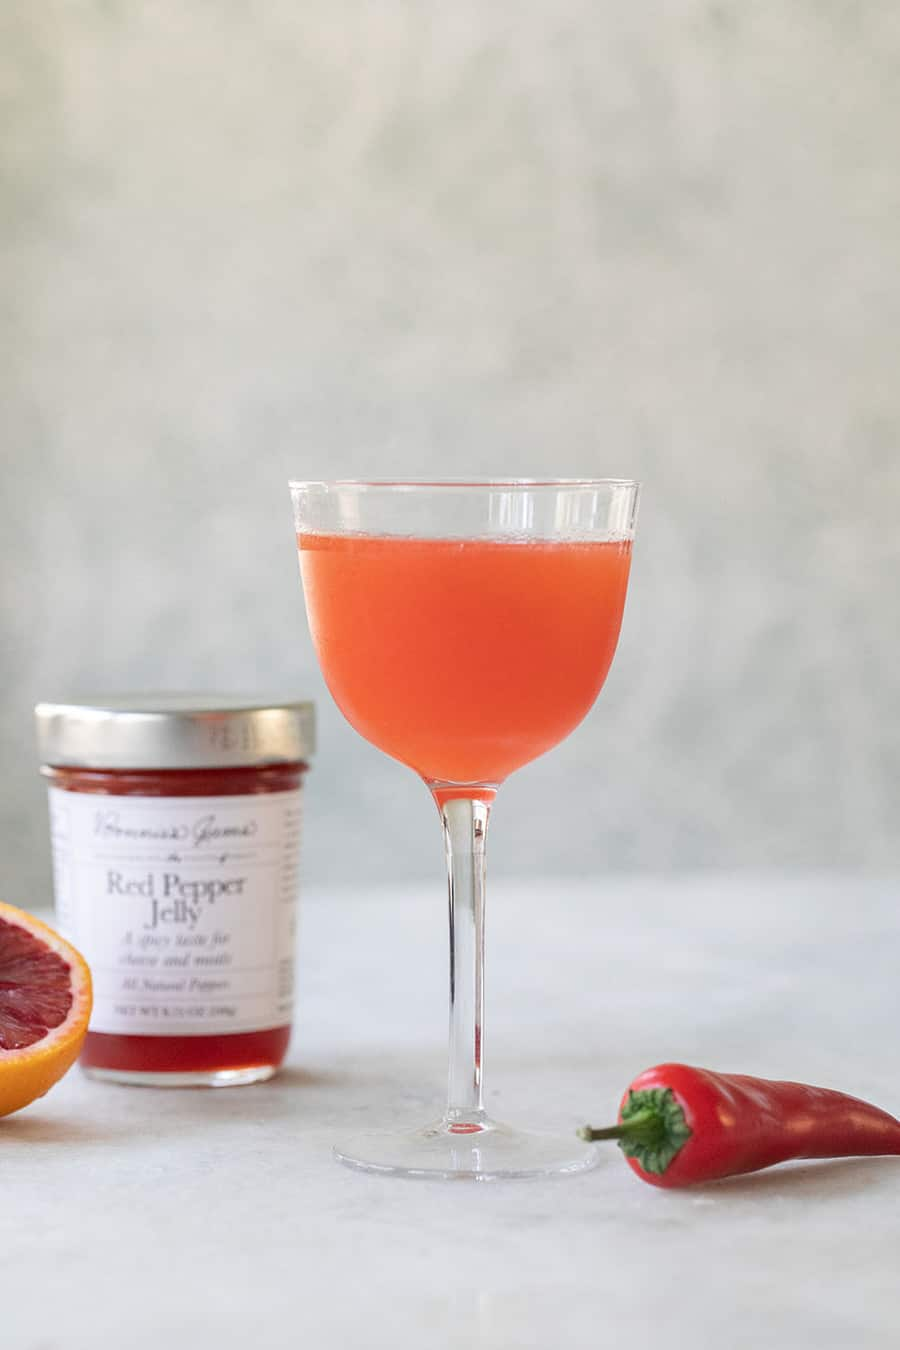 Red pepper jelly cocktail in a coupe glass